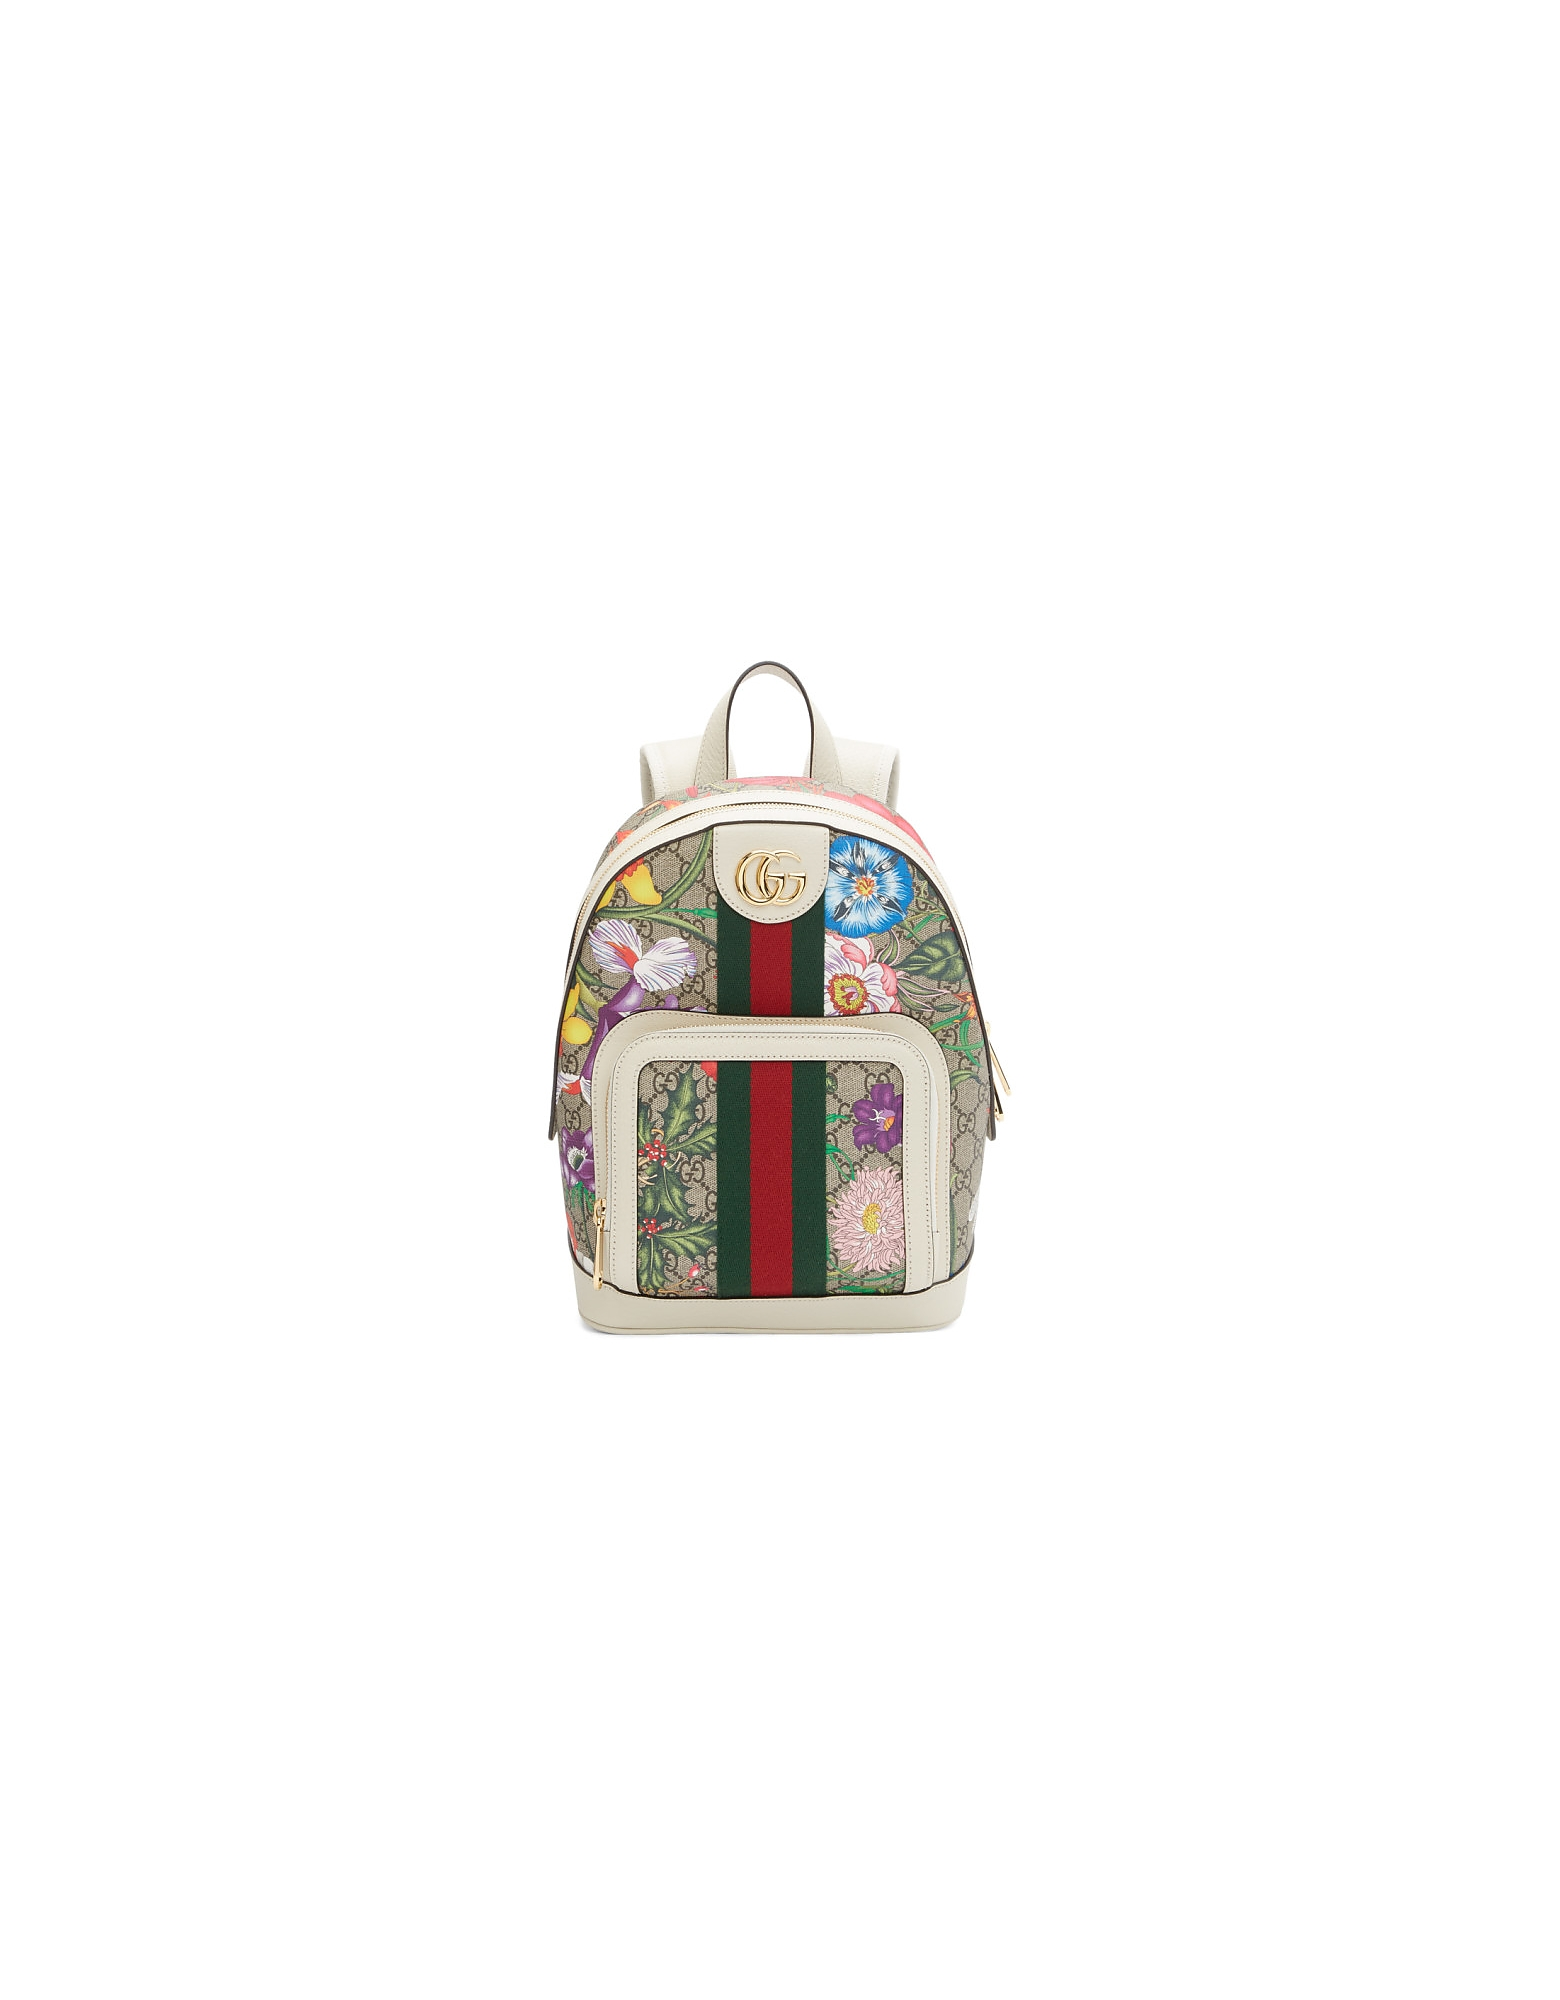 Gucci Designer Handbags, Multicolor Small GG Flora Ophidia Backpack